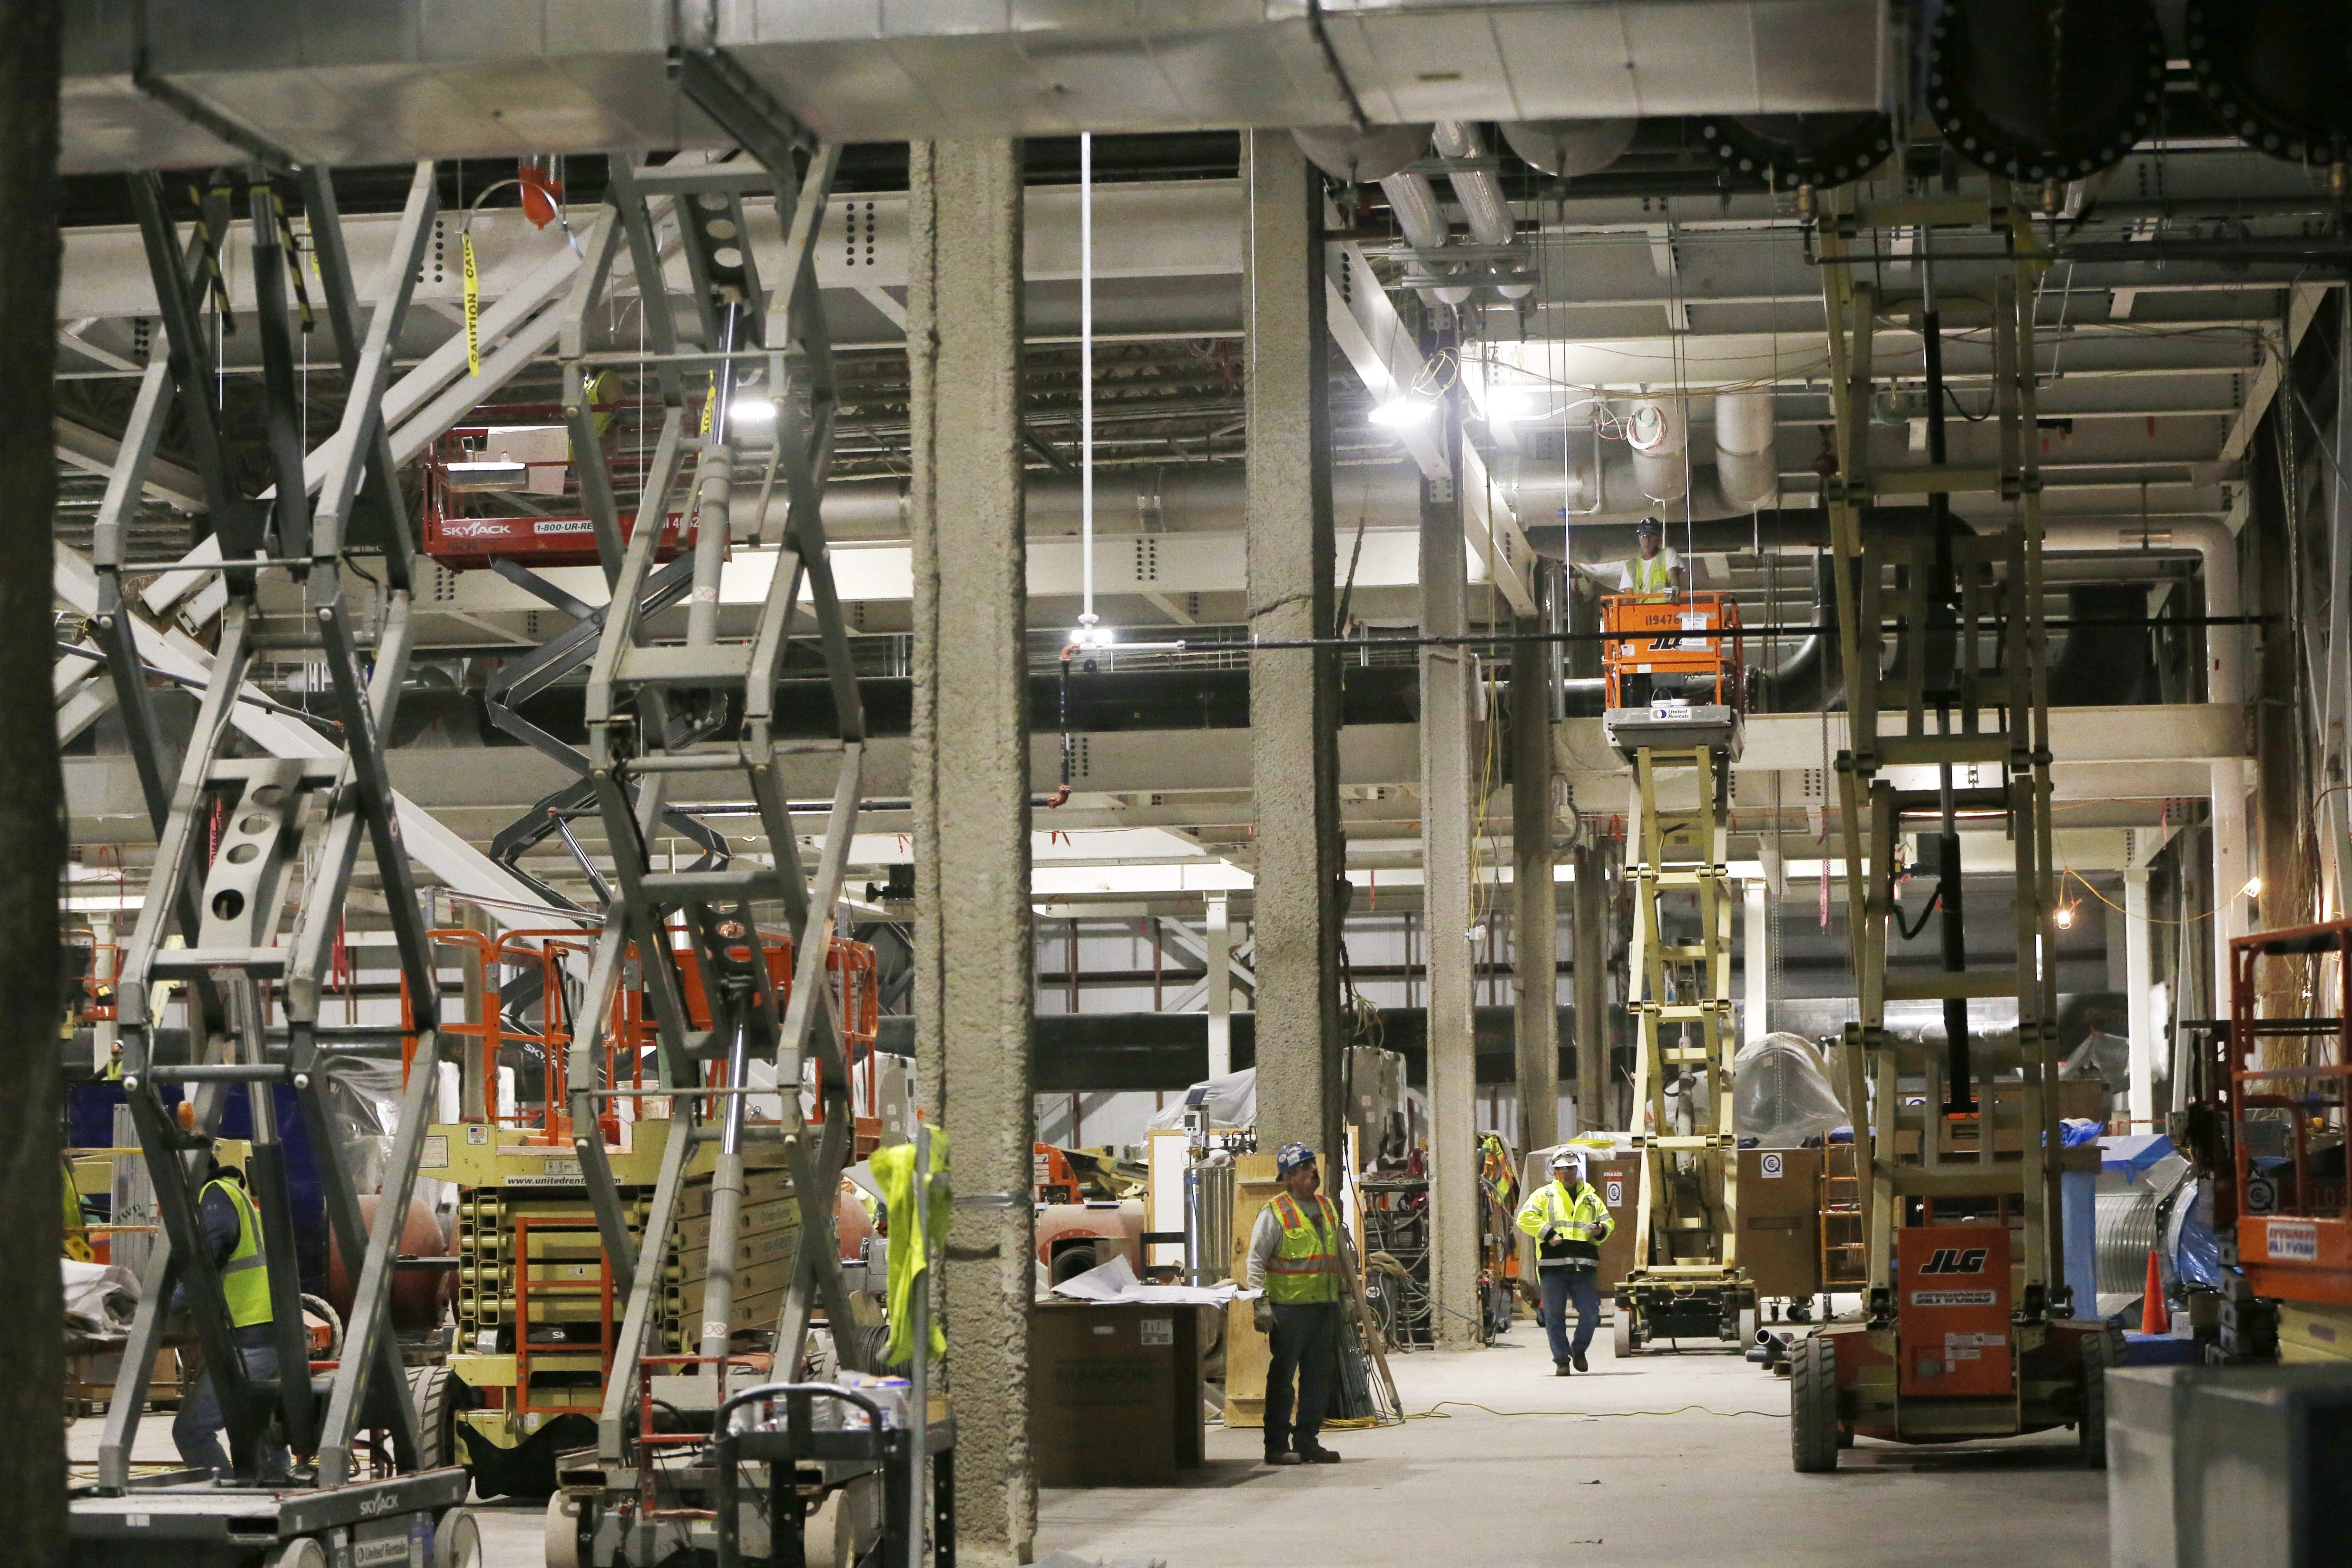 As work progresses on the SolarCity factory at RiverBend in South Buffalo, state says that more than $82.4 million in overdue payments have been transferred to contractors.